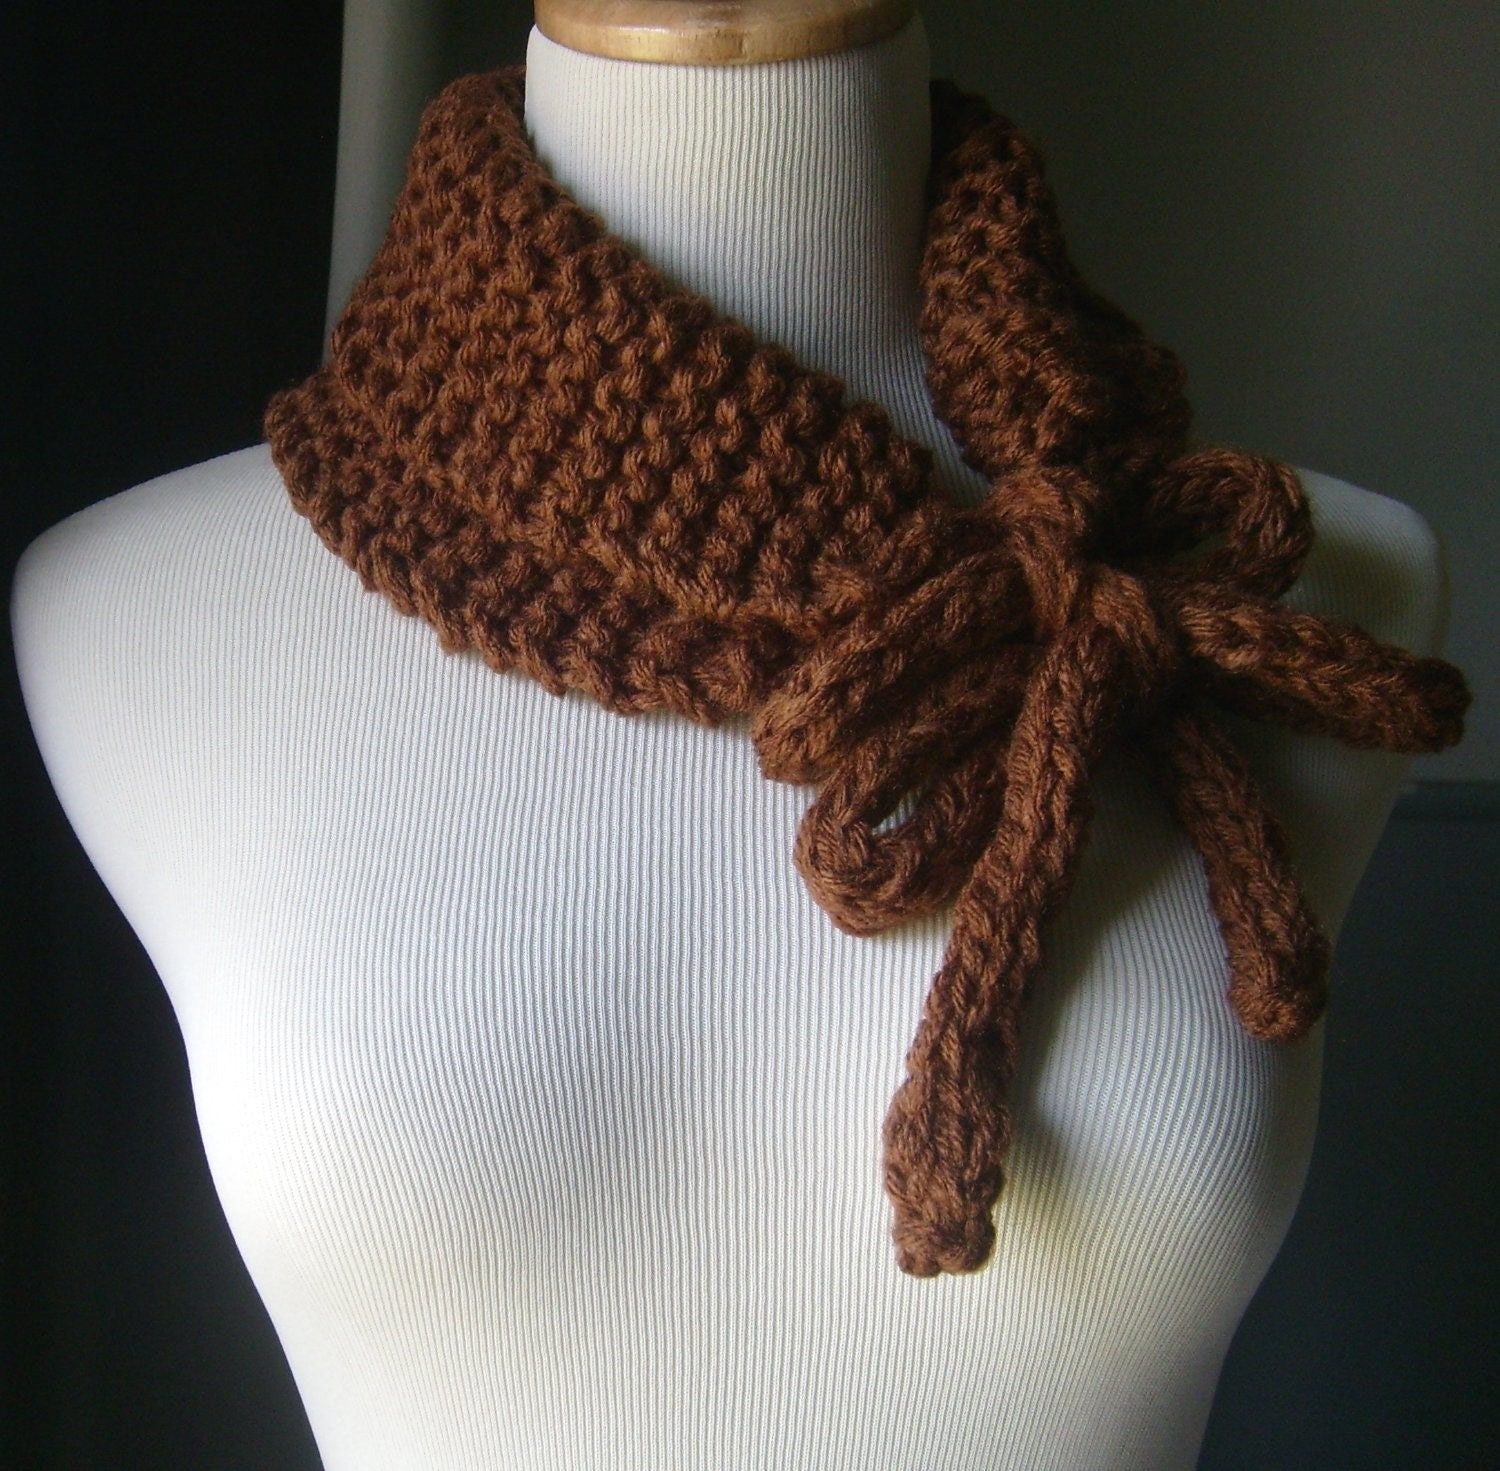 THE CHOCLEE - Knit Cowl/Neckwarmer - Soft and Snuggly In CHOCOLATE BROWN